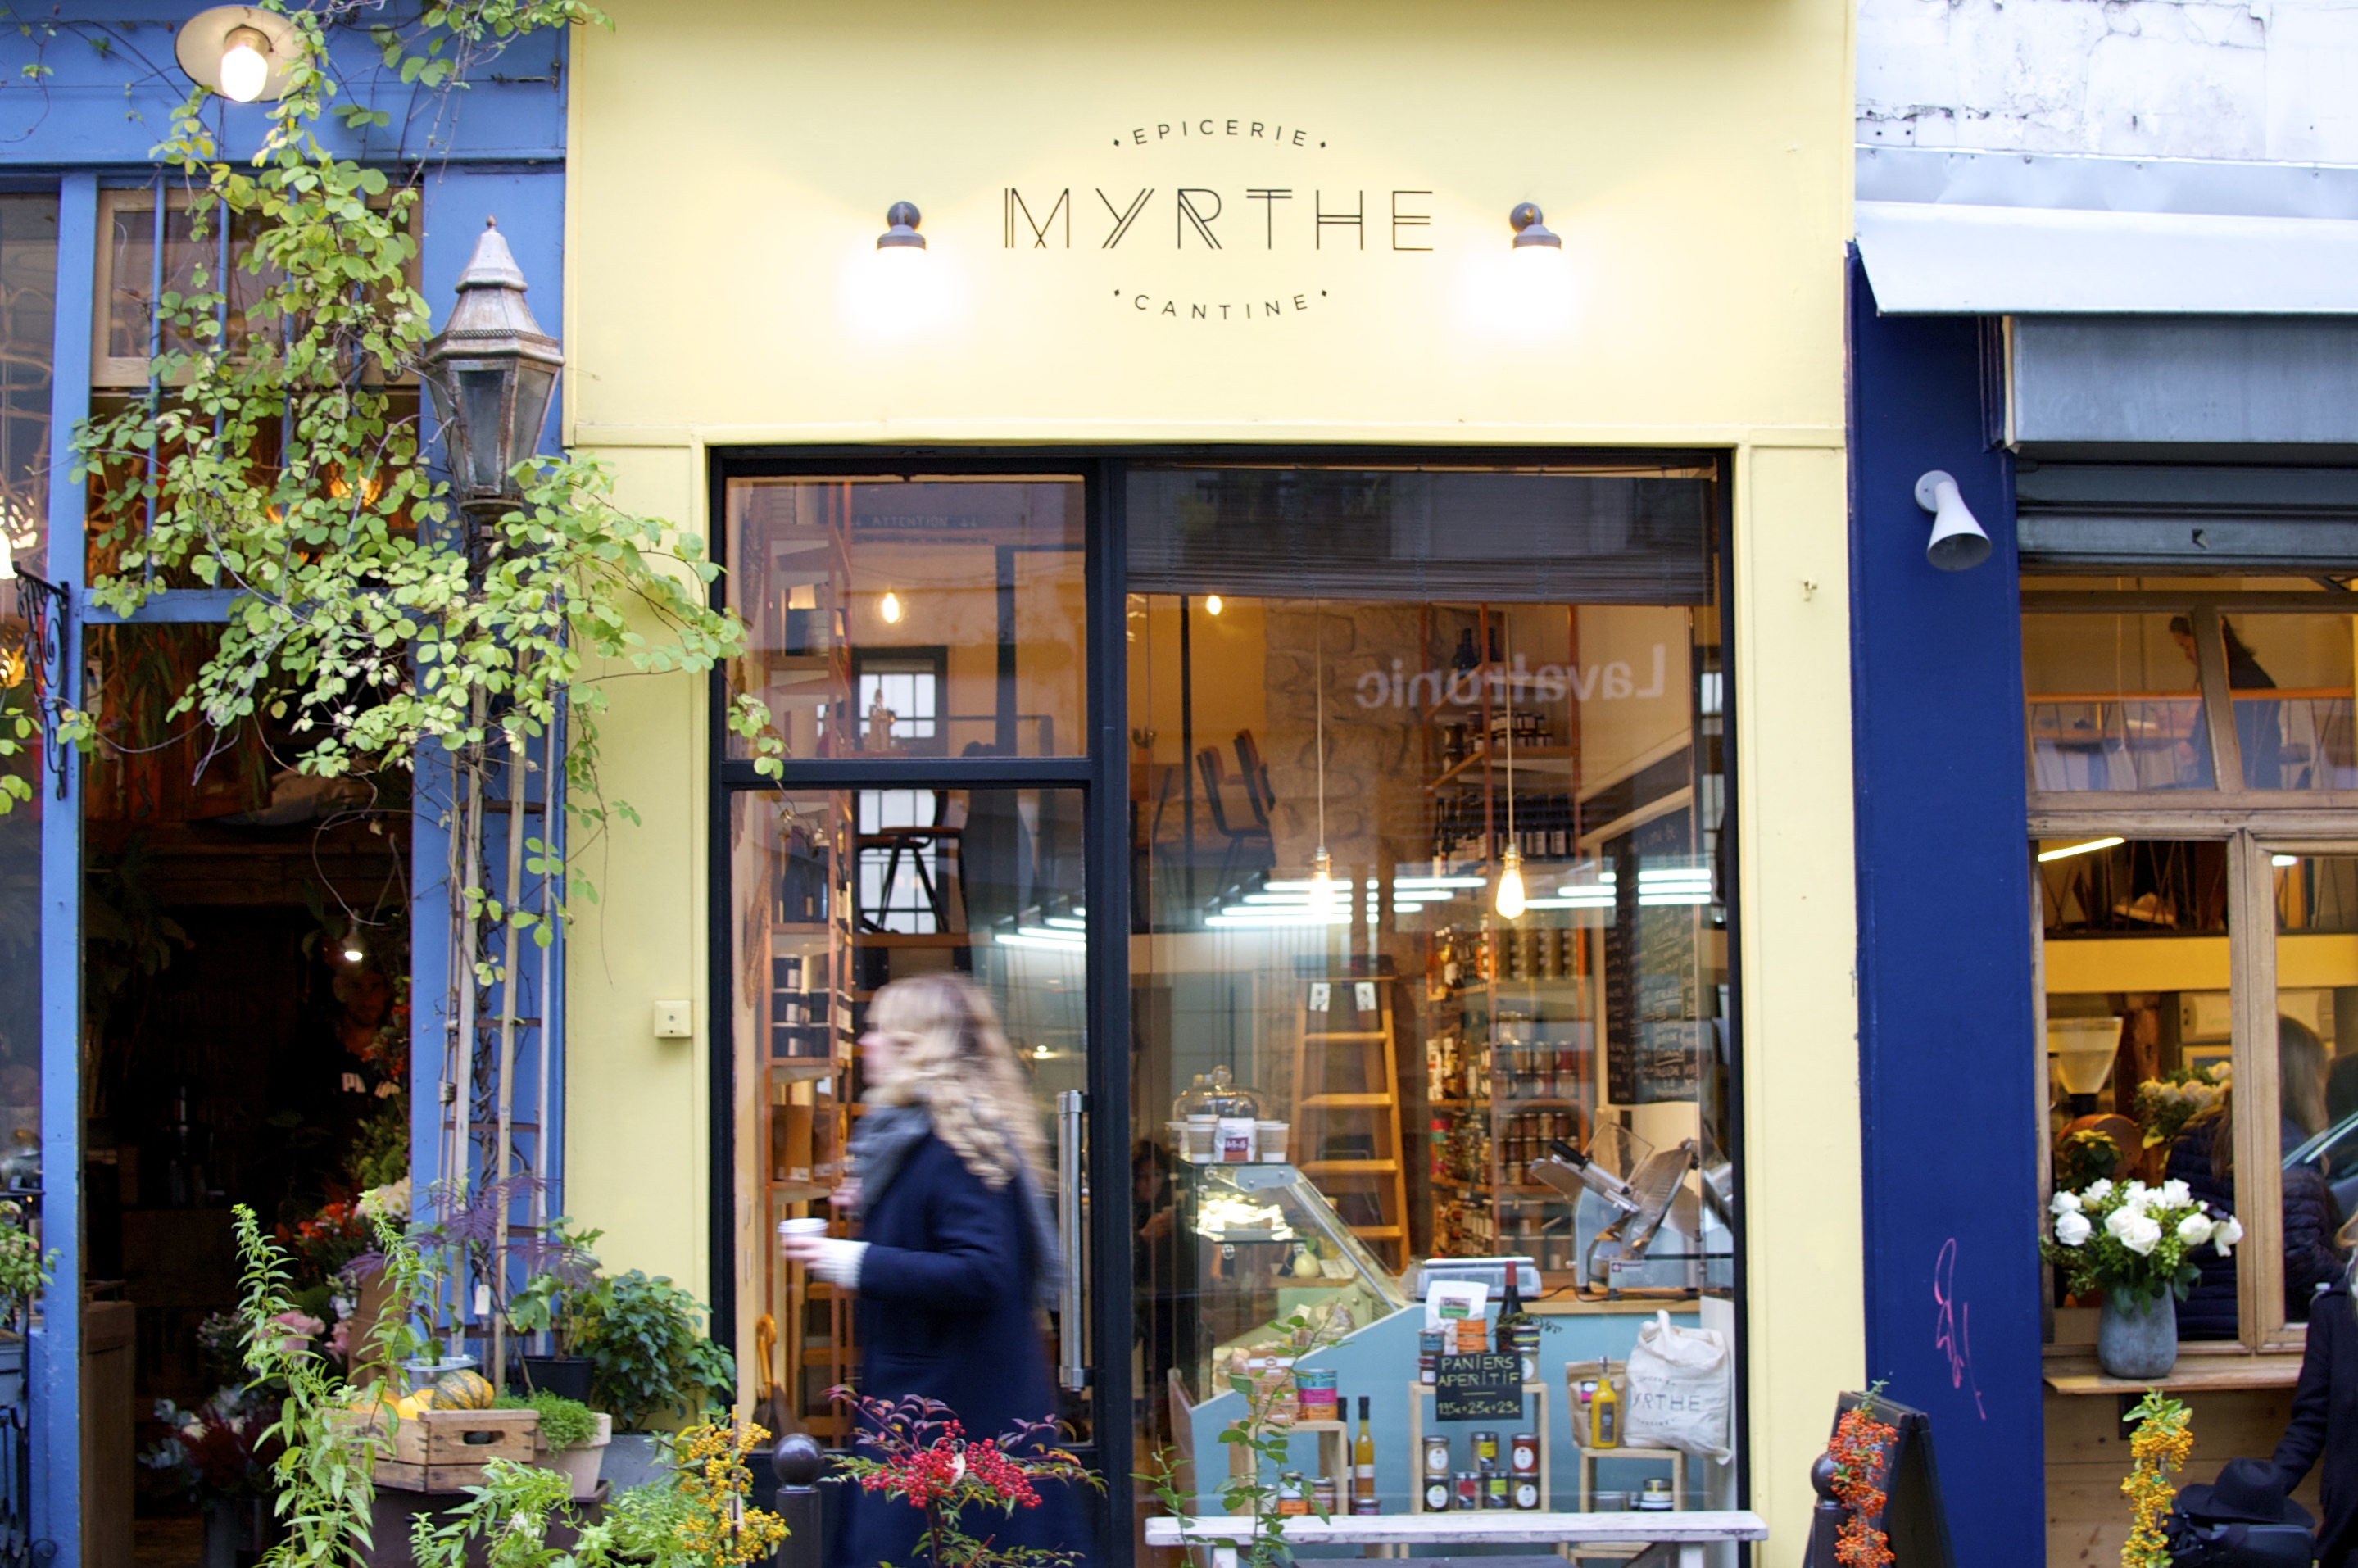 HiP Paris blog. Myrthe, a locally sourced epicerie and cantine off of the Canal Saint Martin. Street view of the colorful cantine.